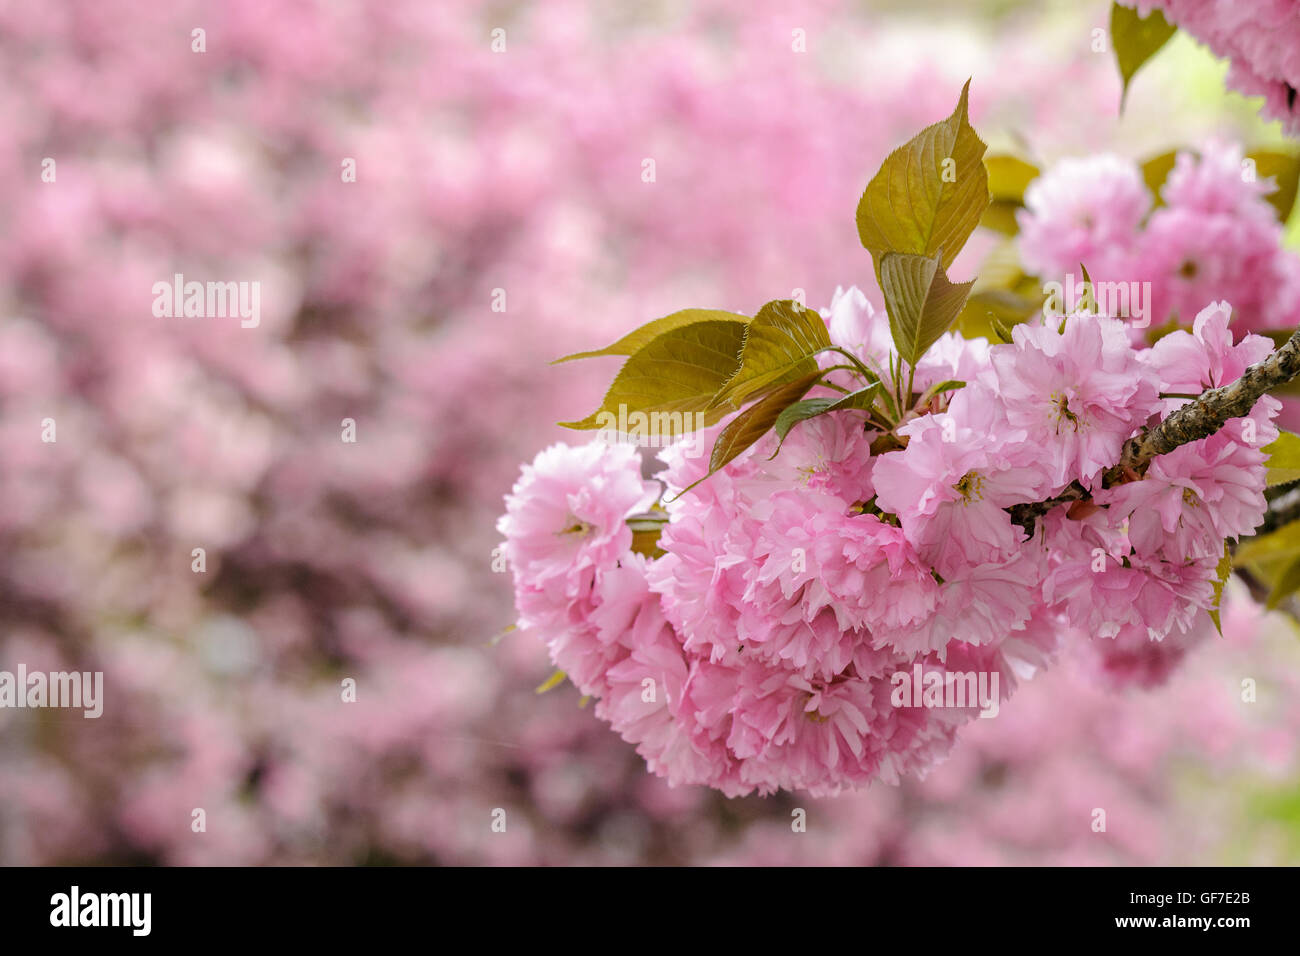 Delicate Pink Flowers Blossomed On Japanese Cherry Trees Stock Photo